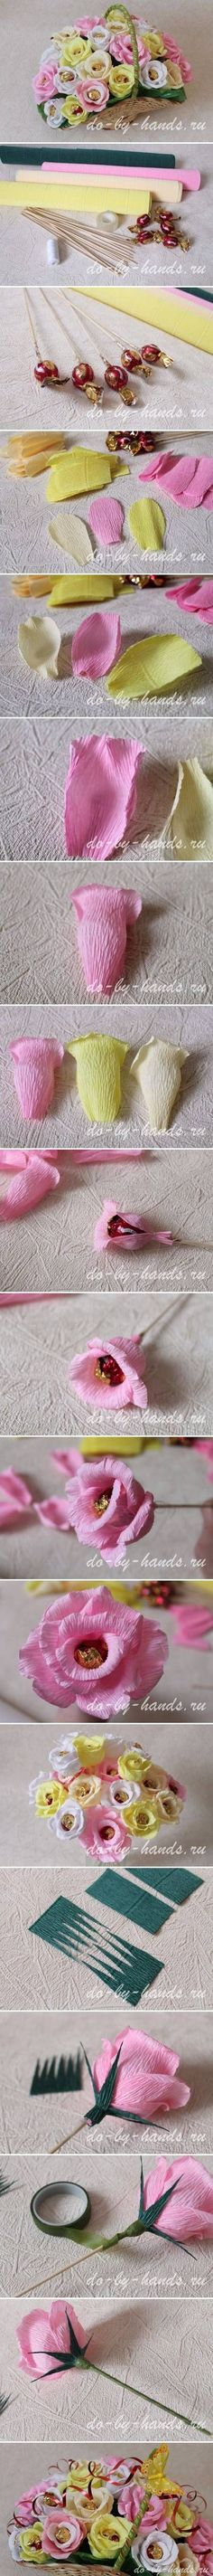 diy paper roses with candy - Inspiring picture on Joyzz.com